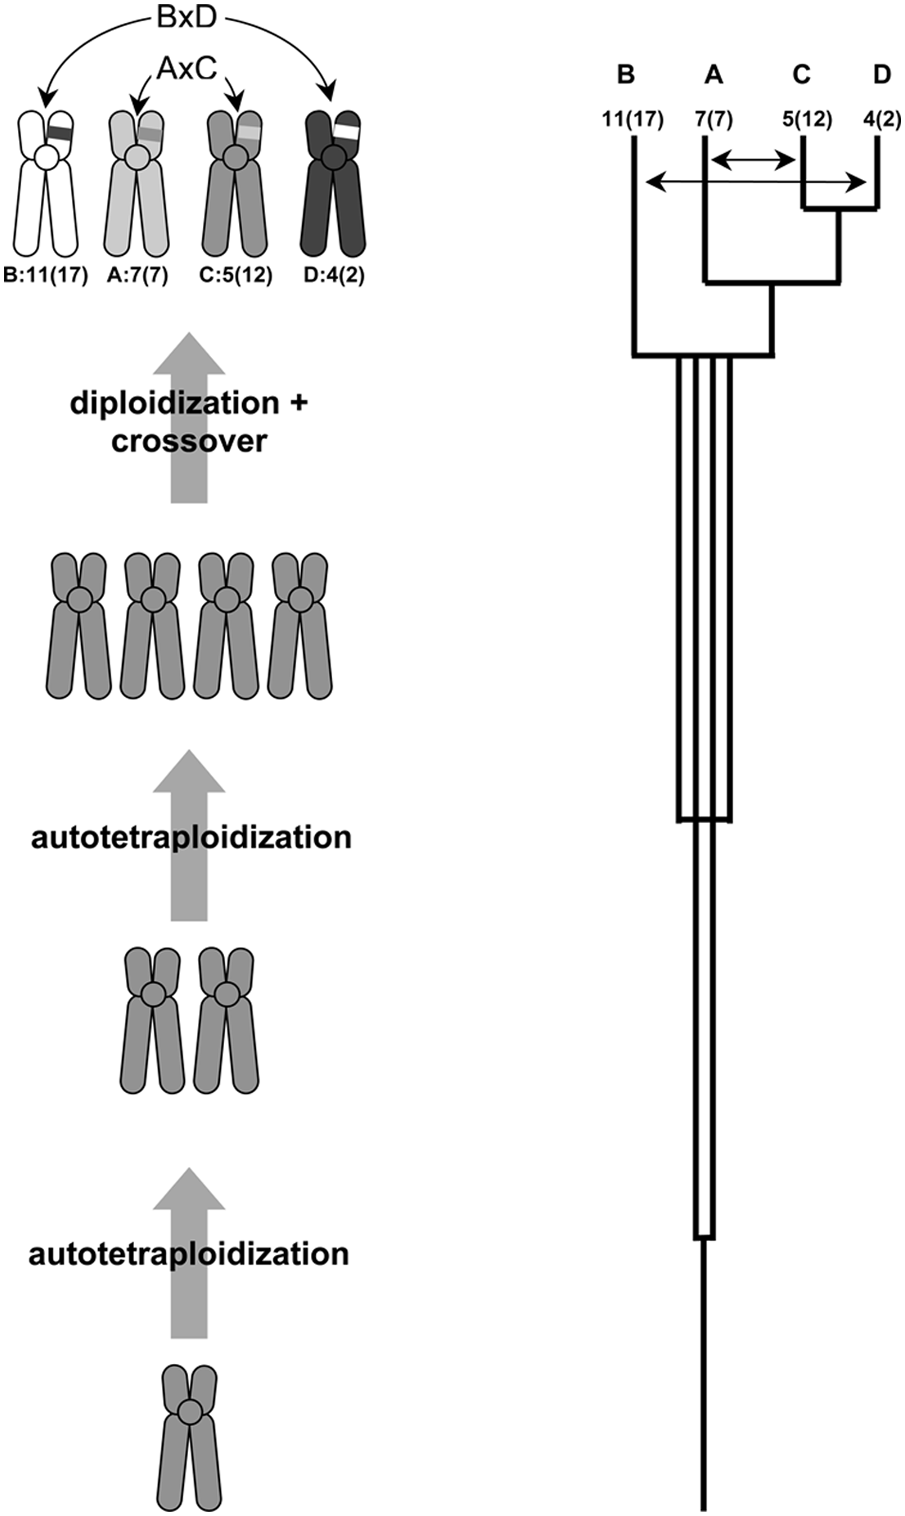 Reconstruction of the Hox cluster duplication history.